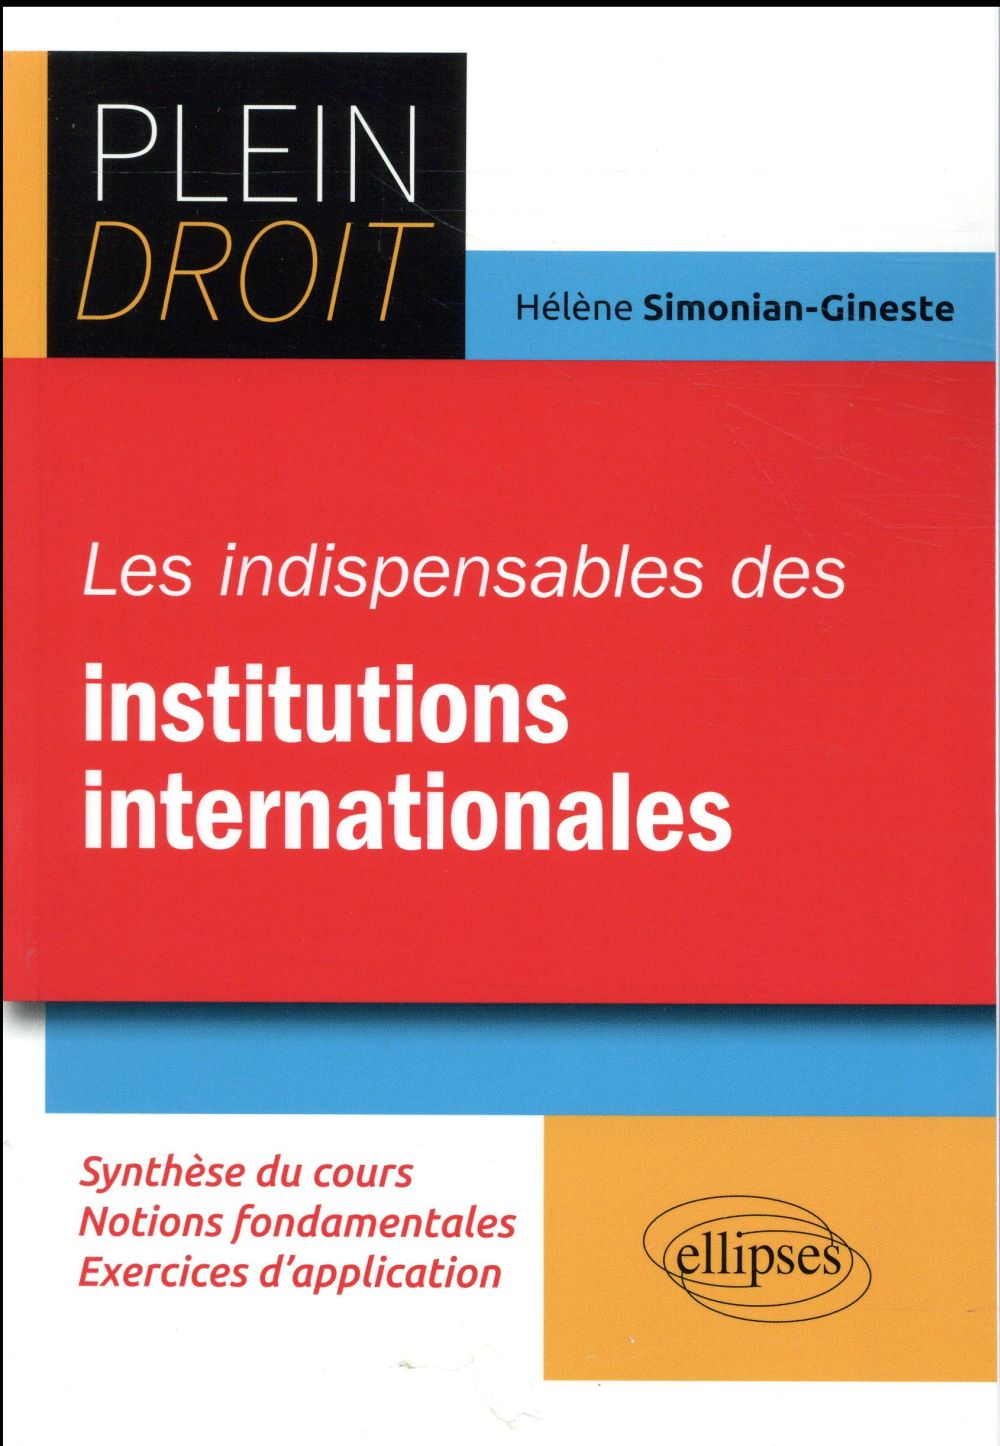 Les indispensables des institutions internationales ; synthèse du cours, notions fondamentales, exercices d'application